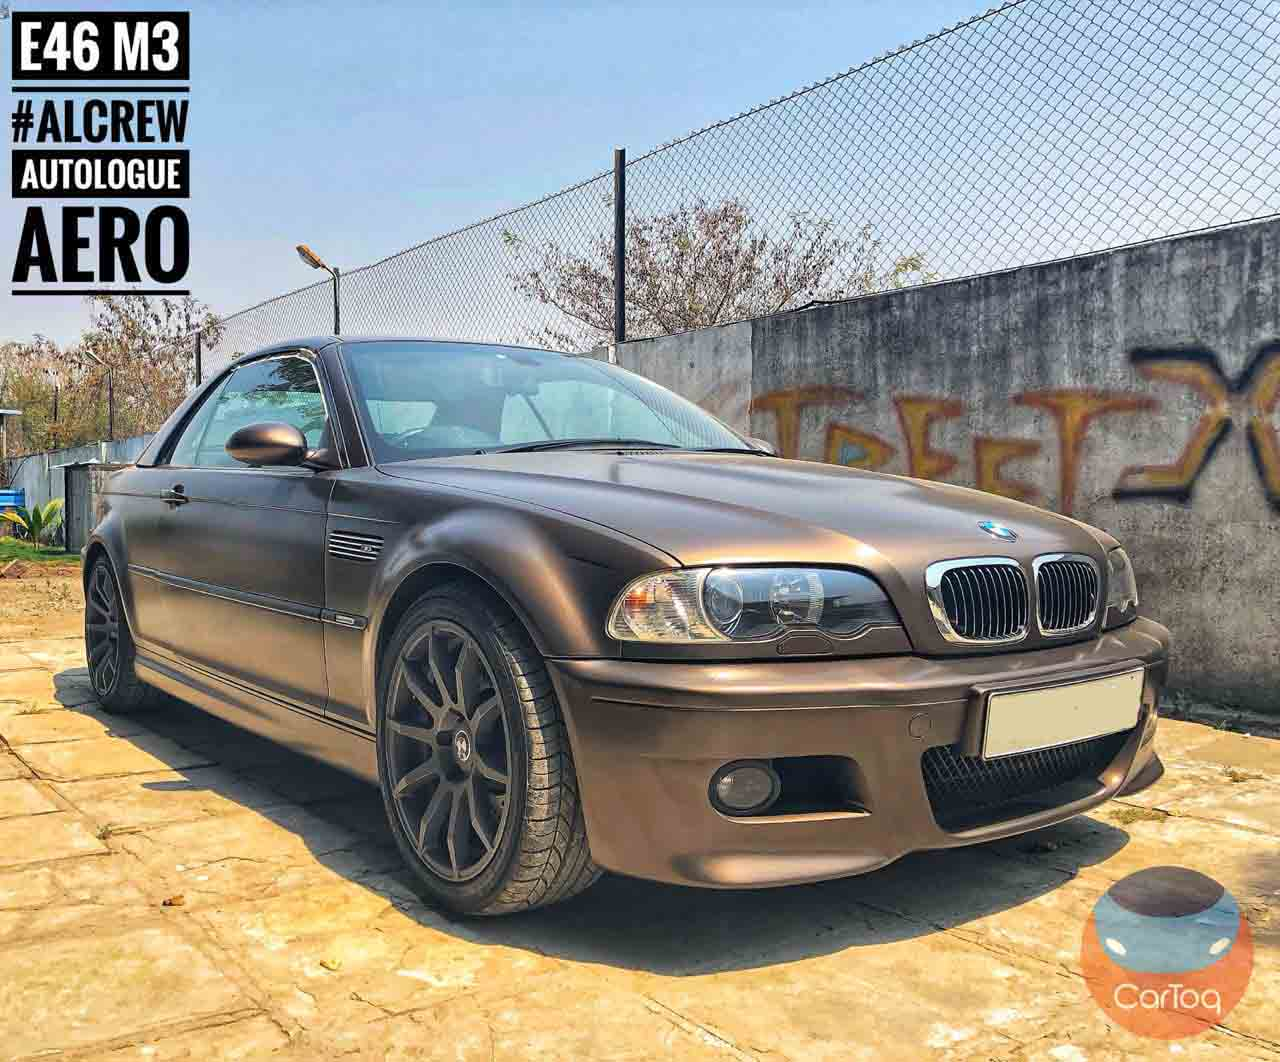 Exclusive Yuvraj Singh S Modified Bmw M3 From Autologue Design Is Real Classy